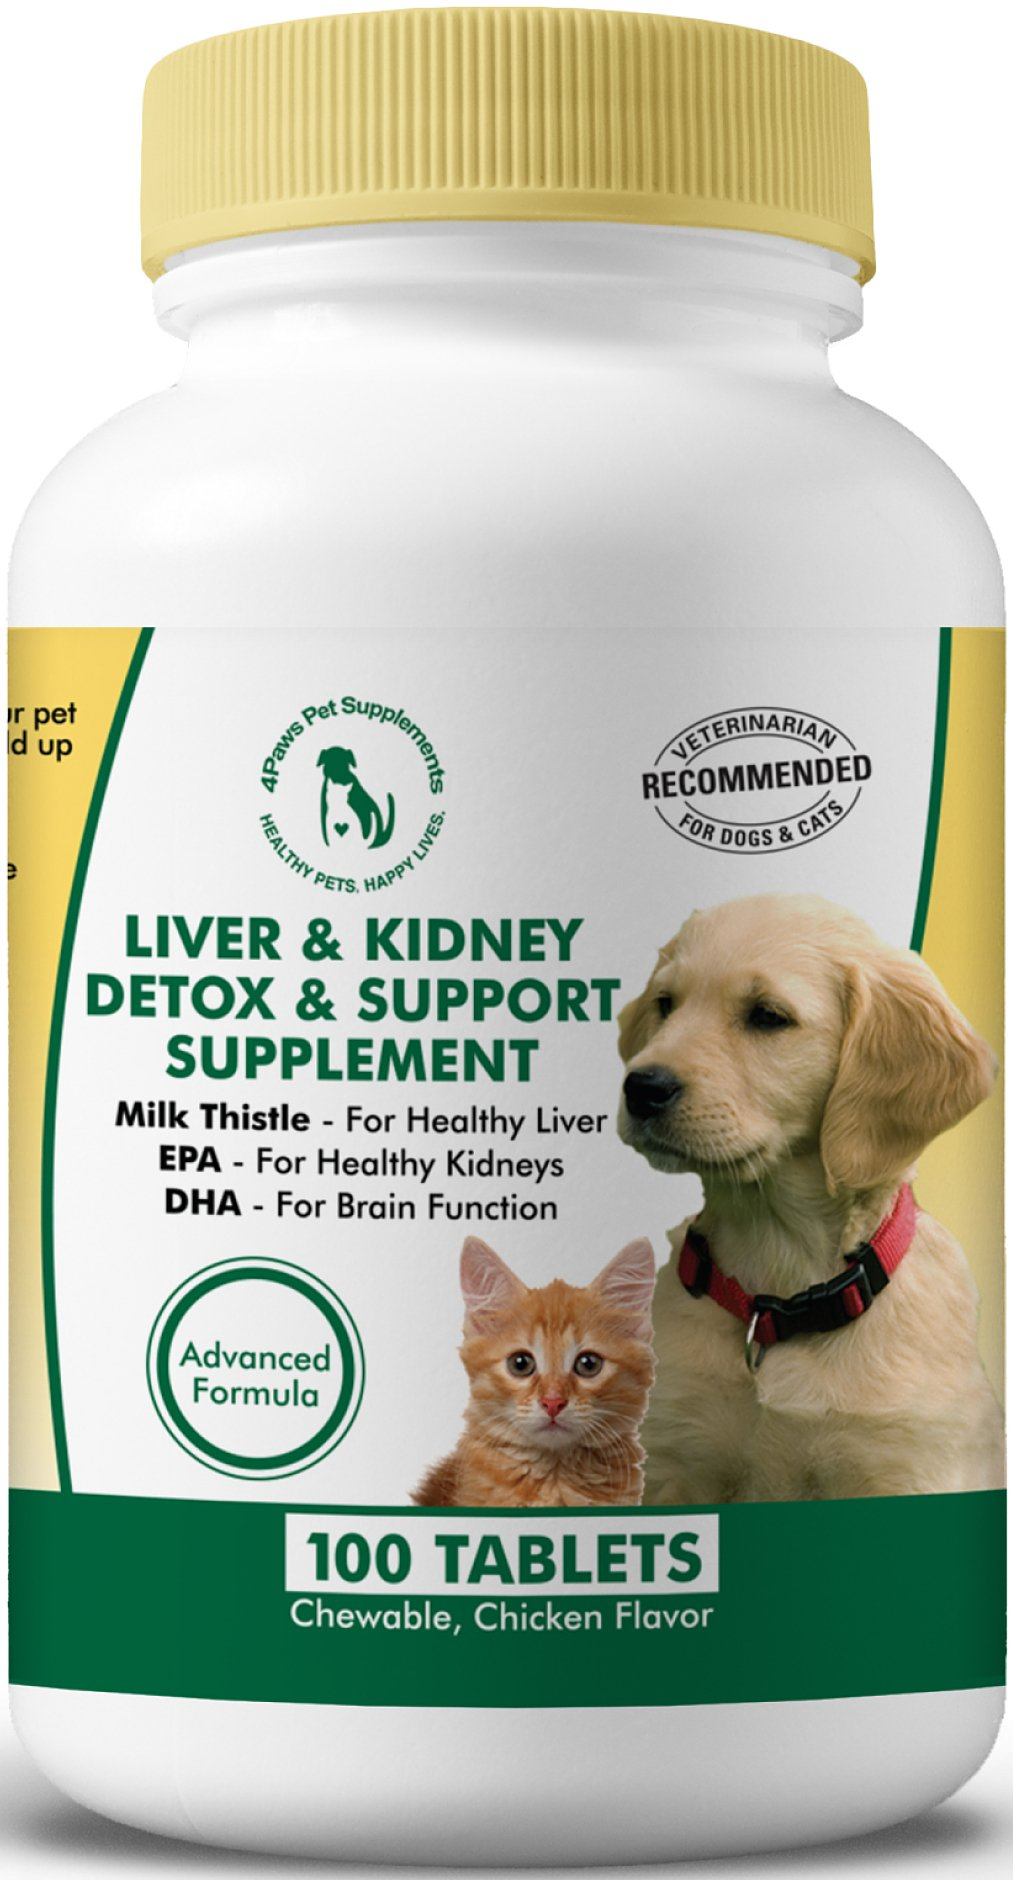 Milk Thistle Liver & Kidney Supplement for Dogs and Cats with DHA, EPA, Silymarin, and Vitamin B (B1 B2 B6 B12) to Prevent Liver and Kidney Disease - 100 Chewable Treats - Chicken Flavor by 4Paws Pet Supplements